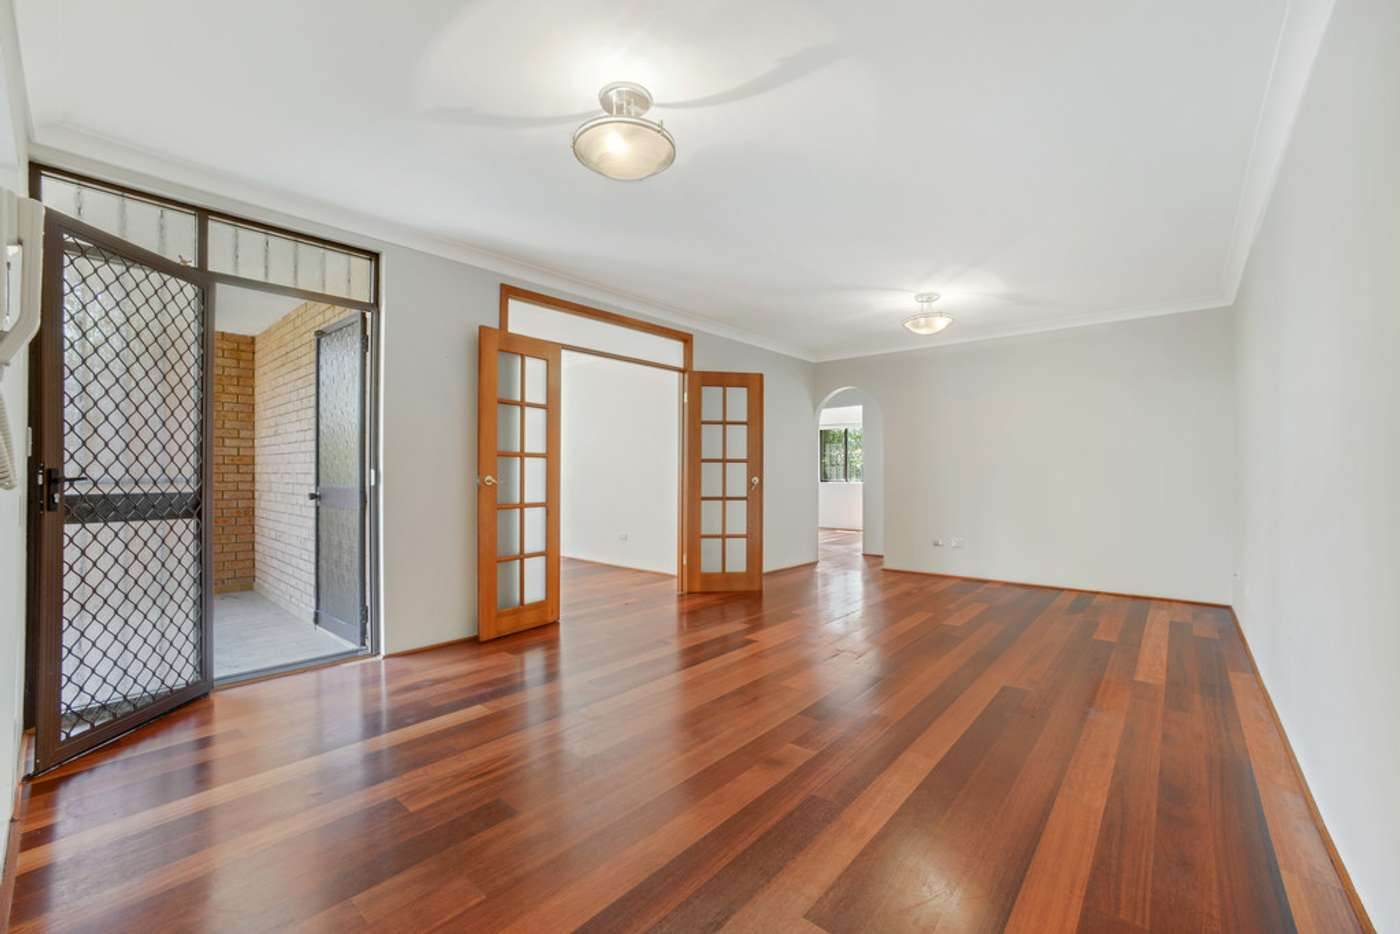 Main view of Homely apartment listing, 2/24-26 Grosvenor Street, Kensington NSW 2033